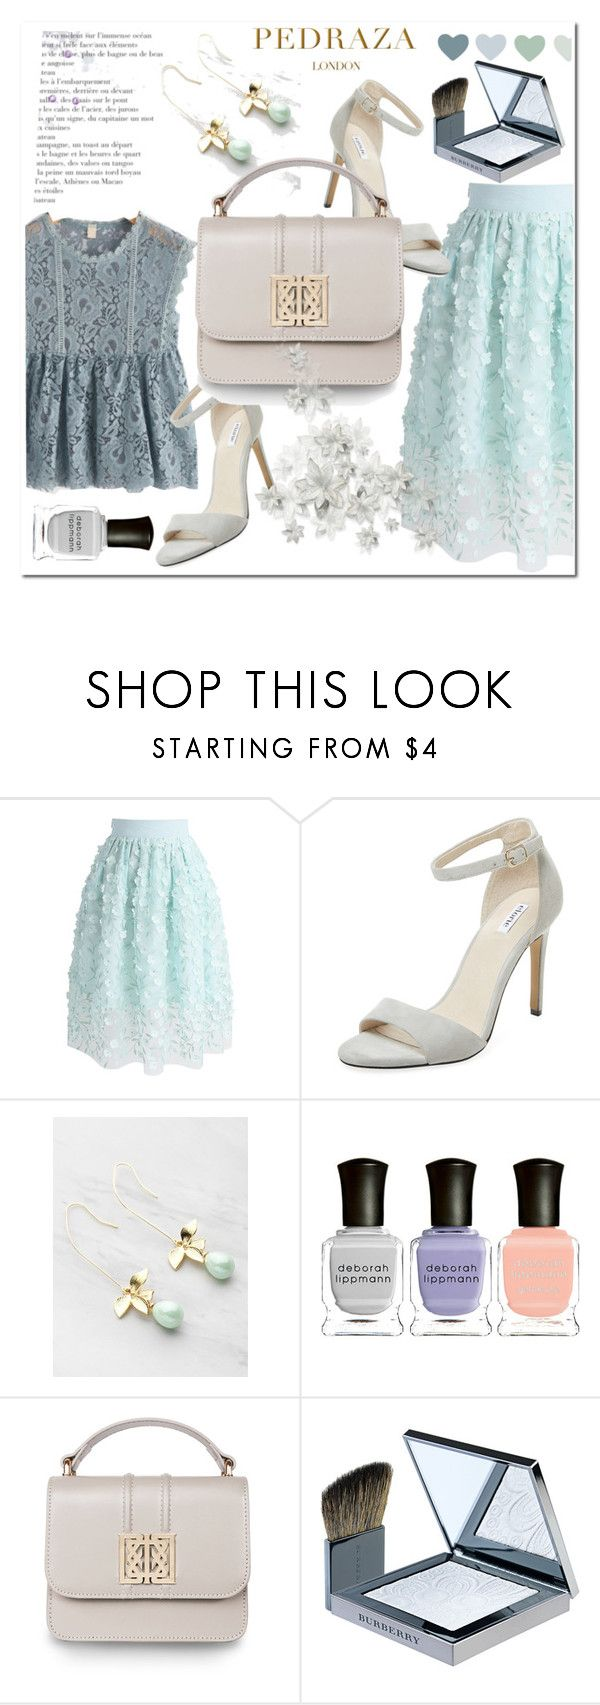 """""""PEDRAZA LONDON"""" by aidaaa1992 ❤ liked on Polyvore featuring Chicwish, Elorie, Deborah Lippmann and Burberry"""